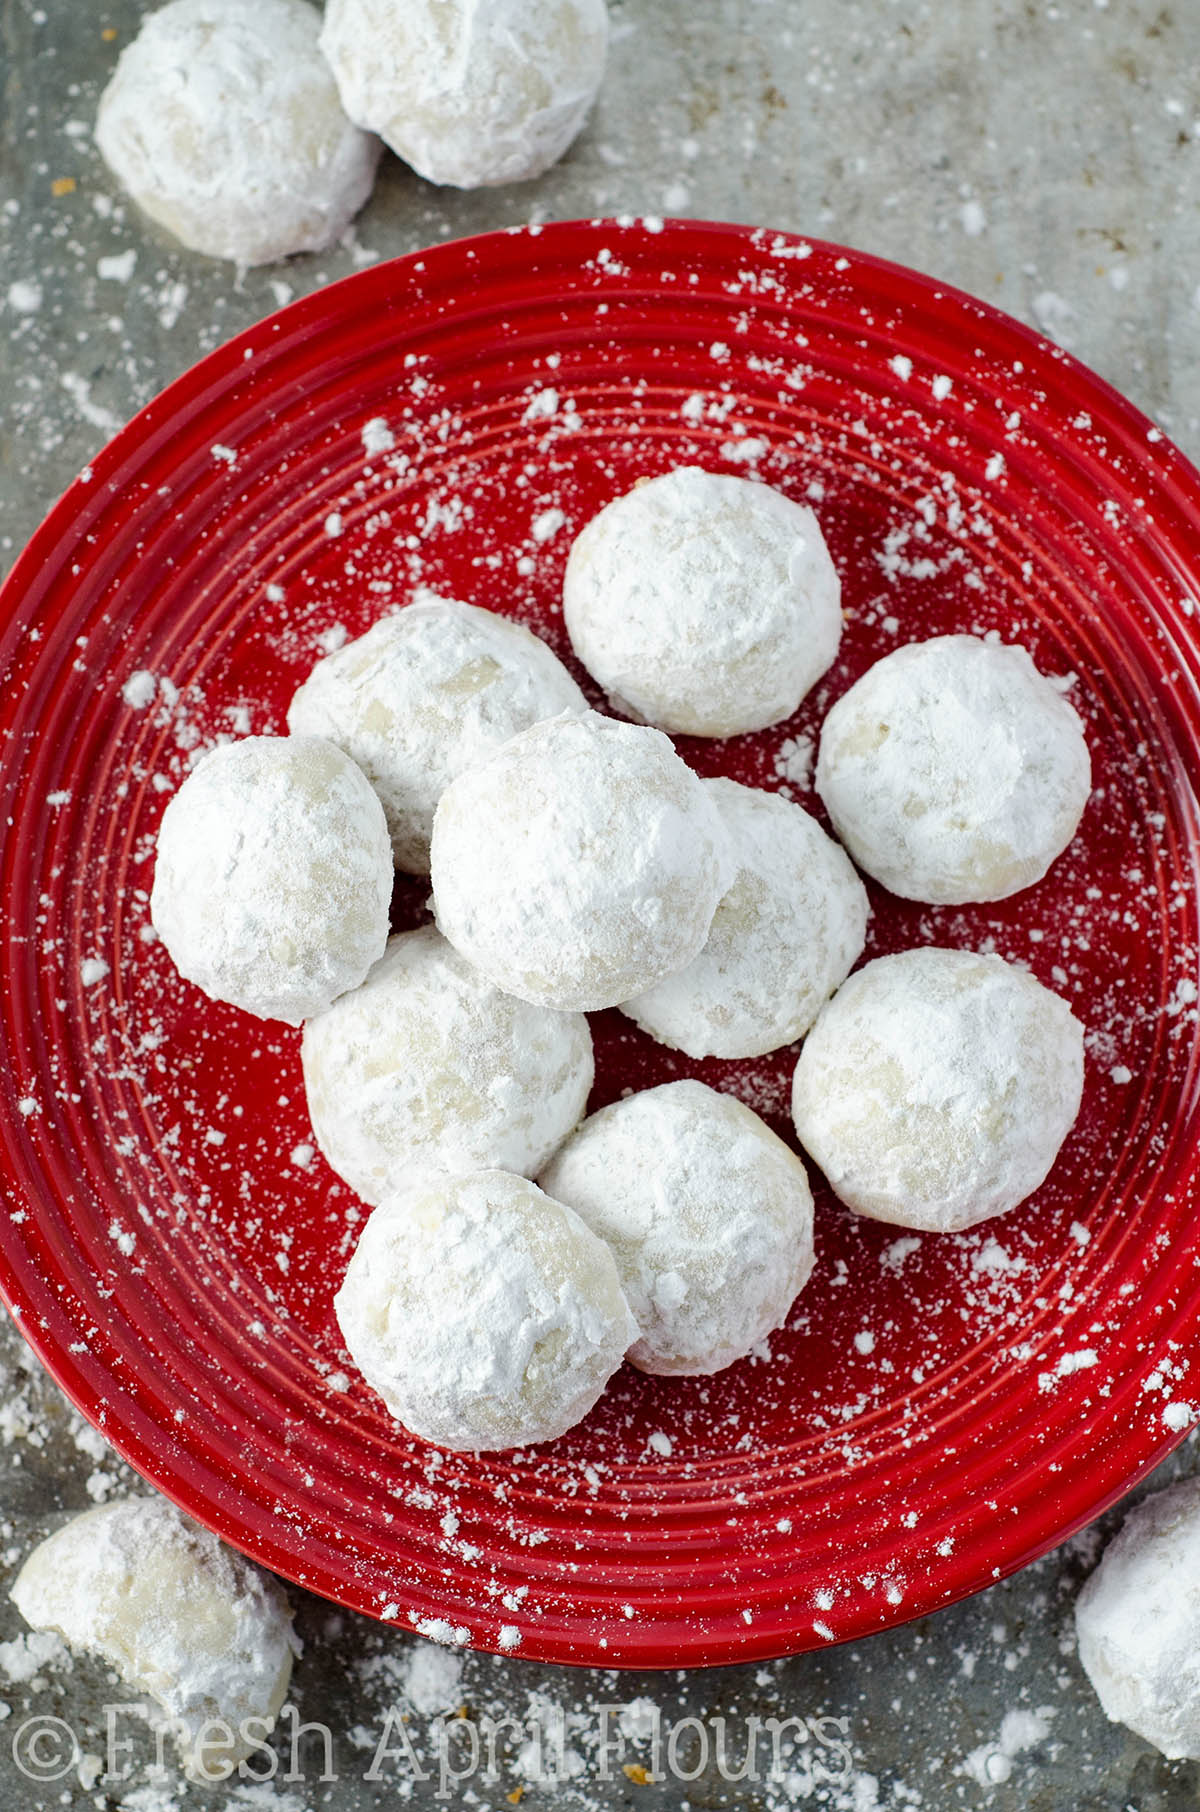 russian tea cakes on a red plate